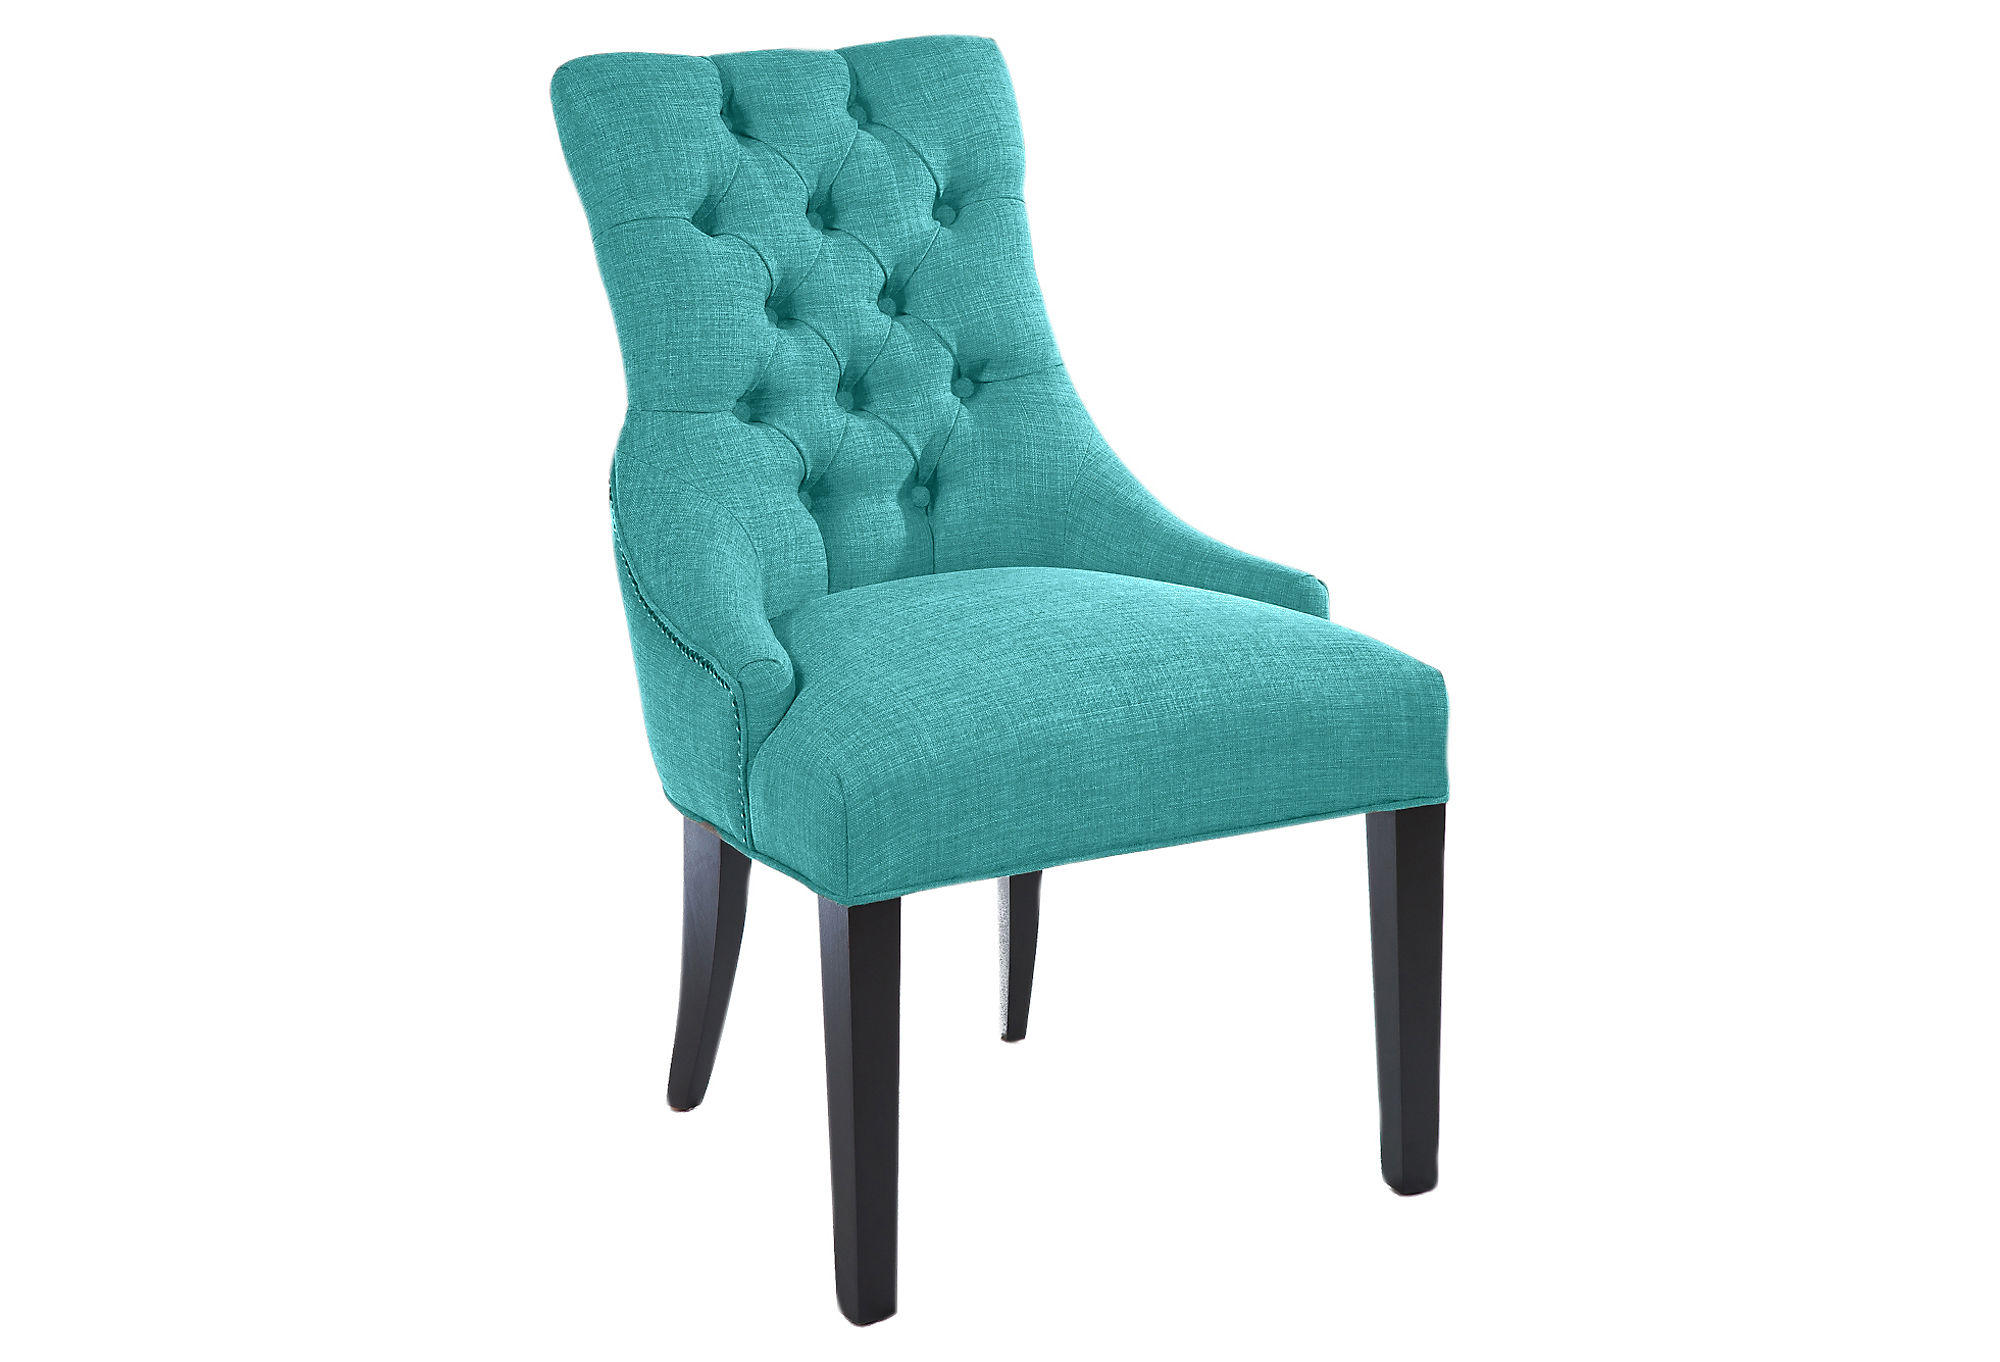 teal tufted chair rio gear ultimate backpack with cooler briana accent and from one kings lane